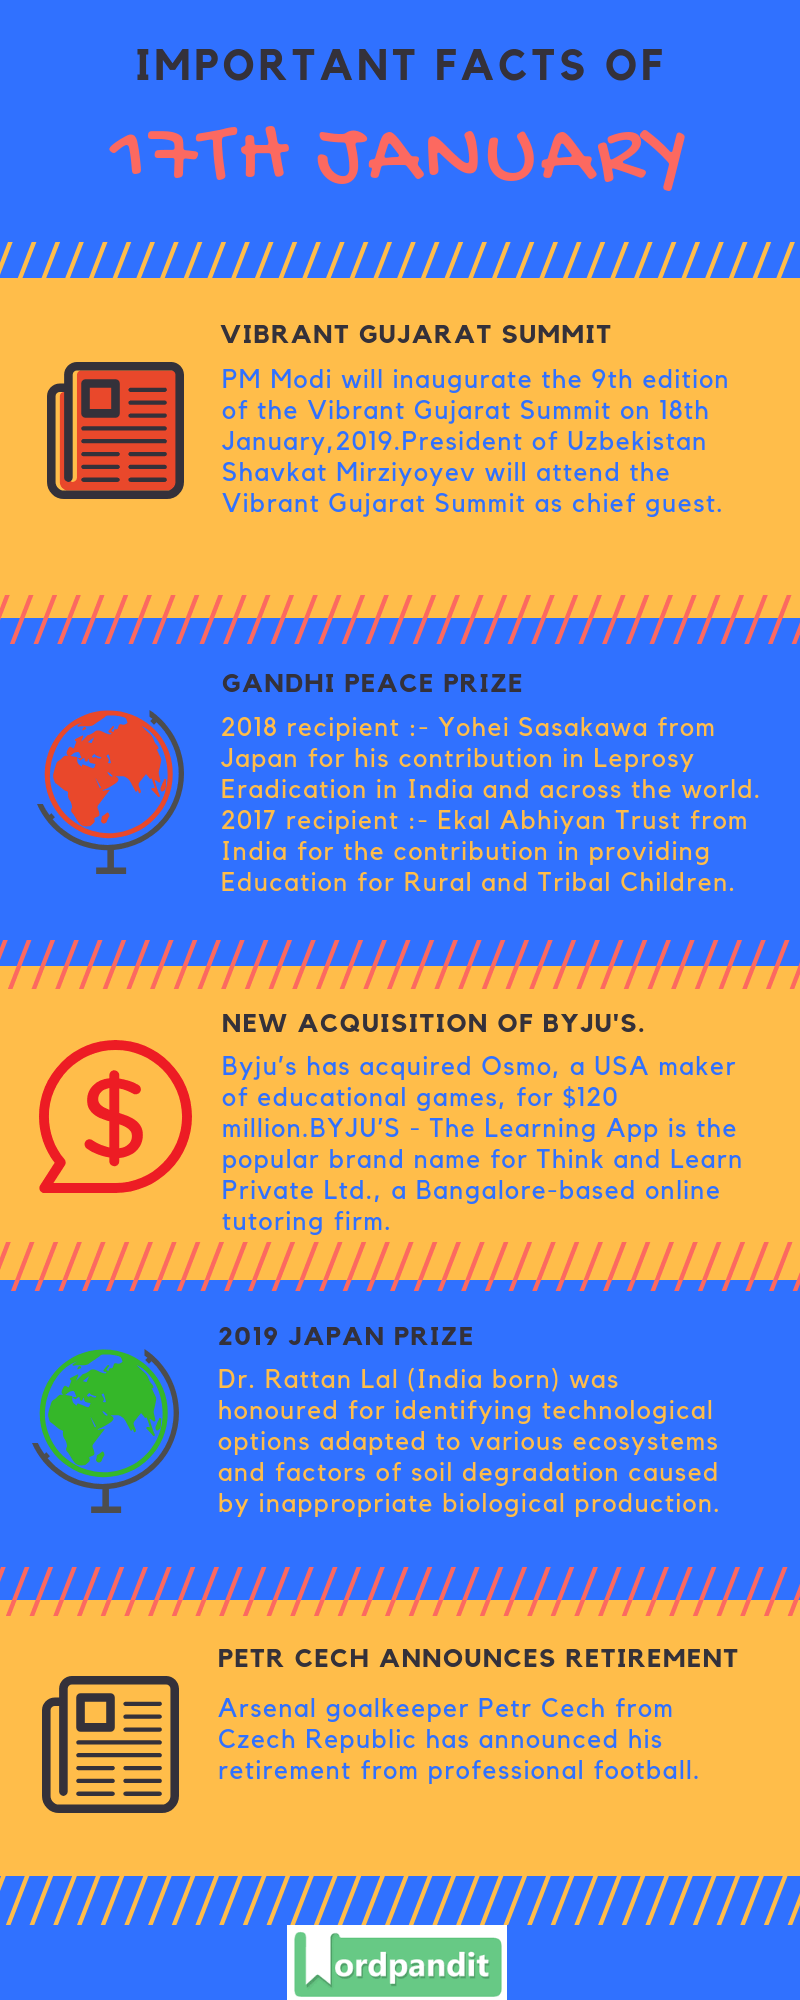 Daily Current Affairs 17 January 2019 Current Affairs Quiz 17 January 2019 Current Affairs Infographic